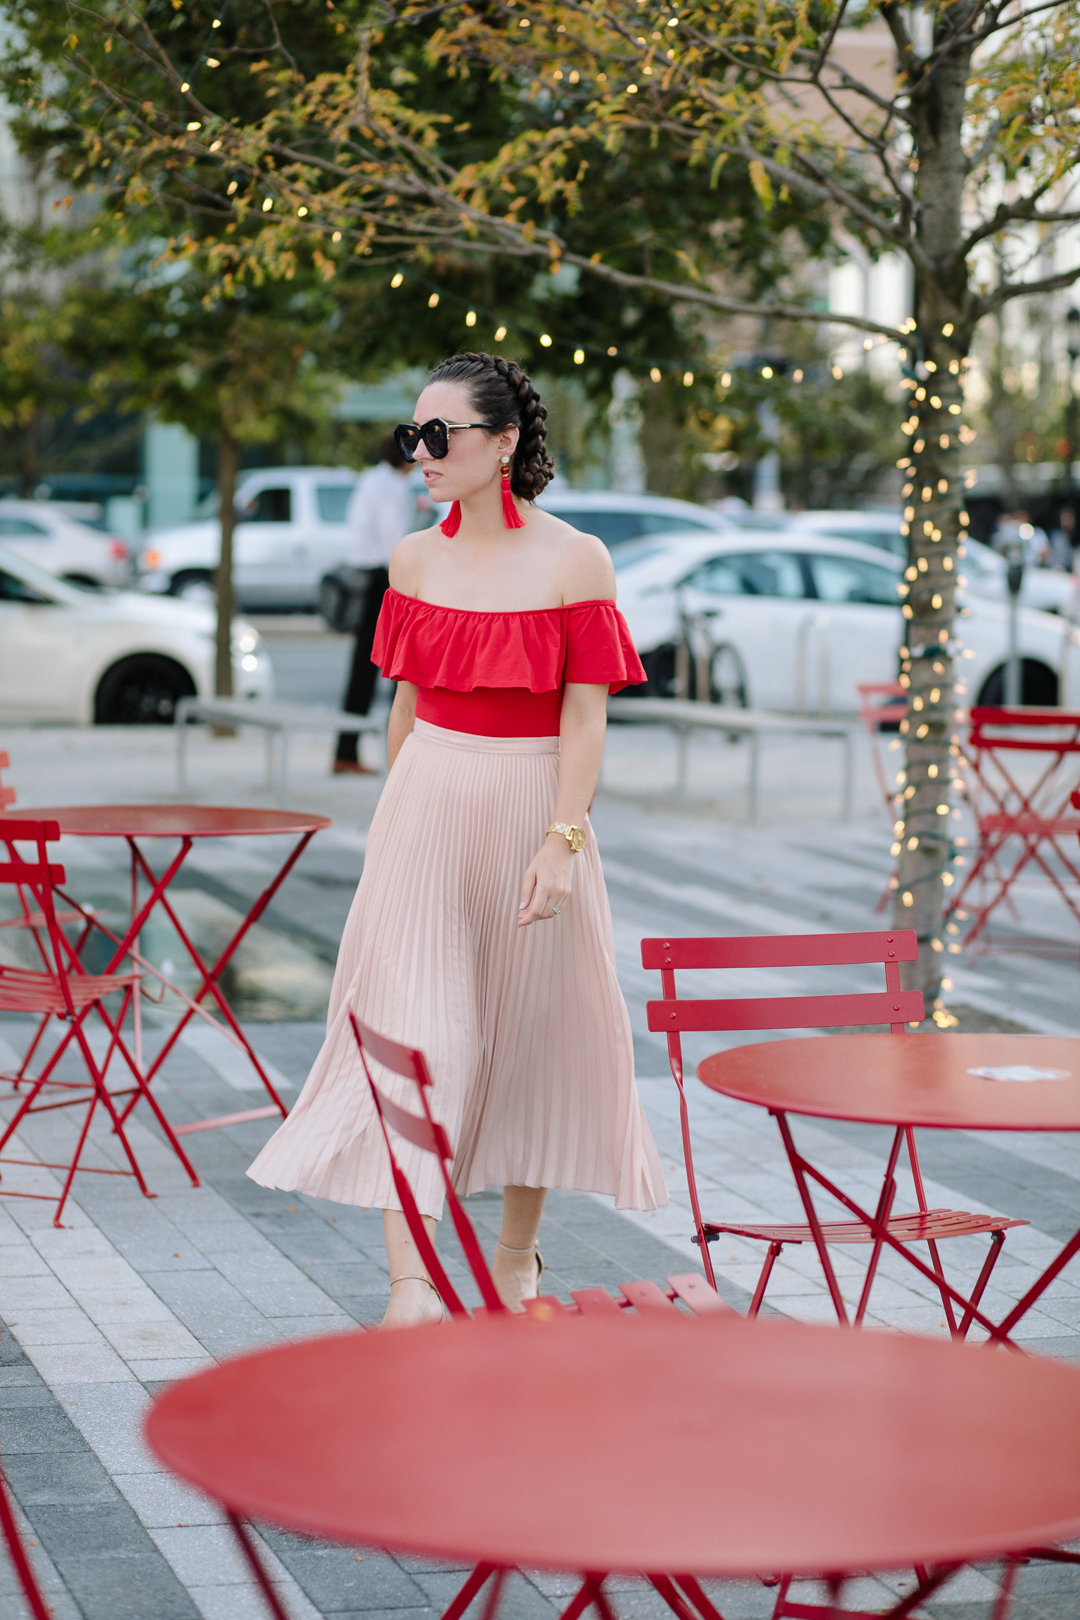 Pink and red outfit combinations